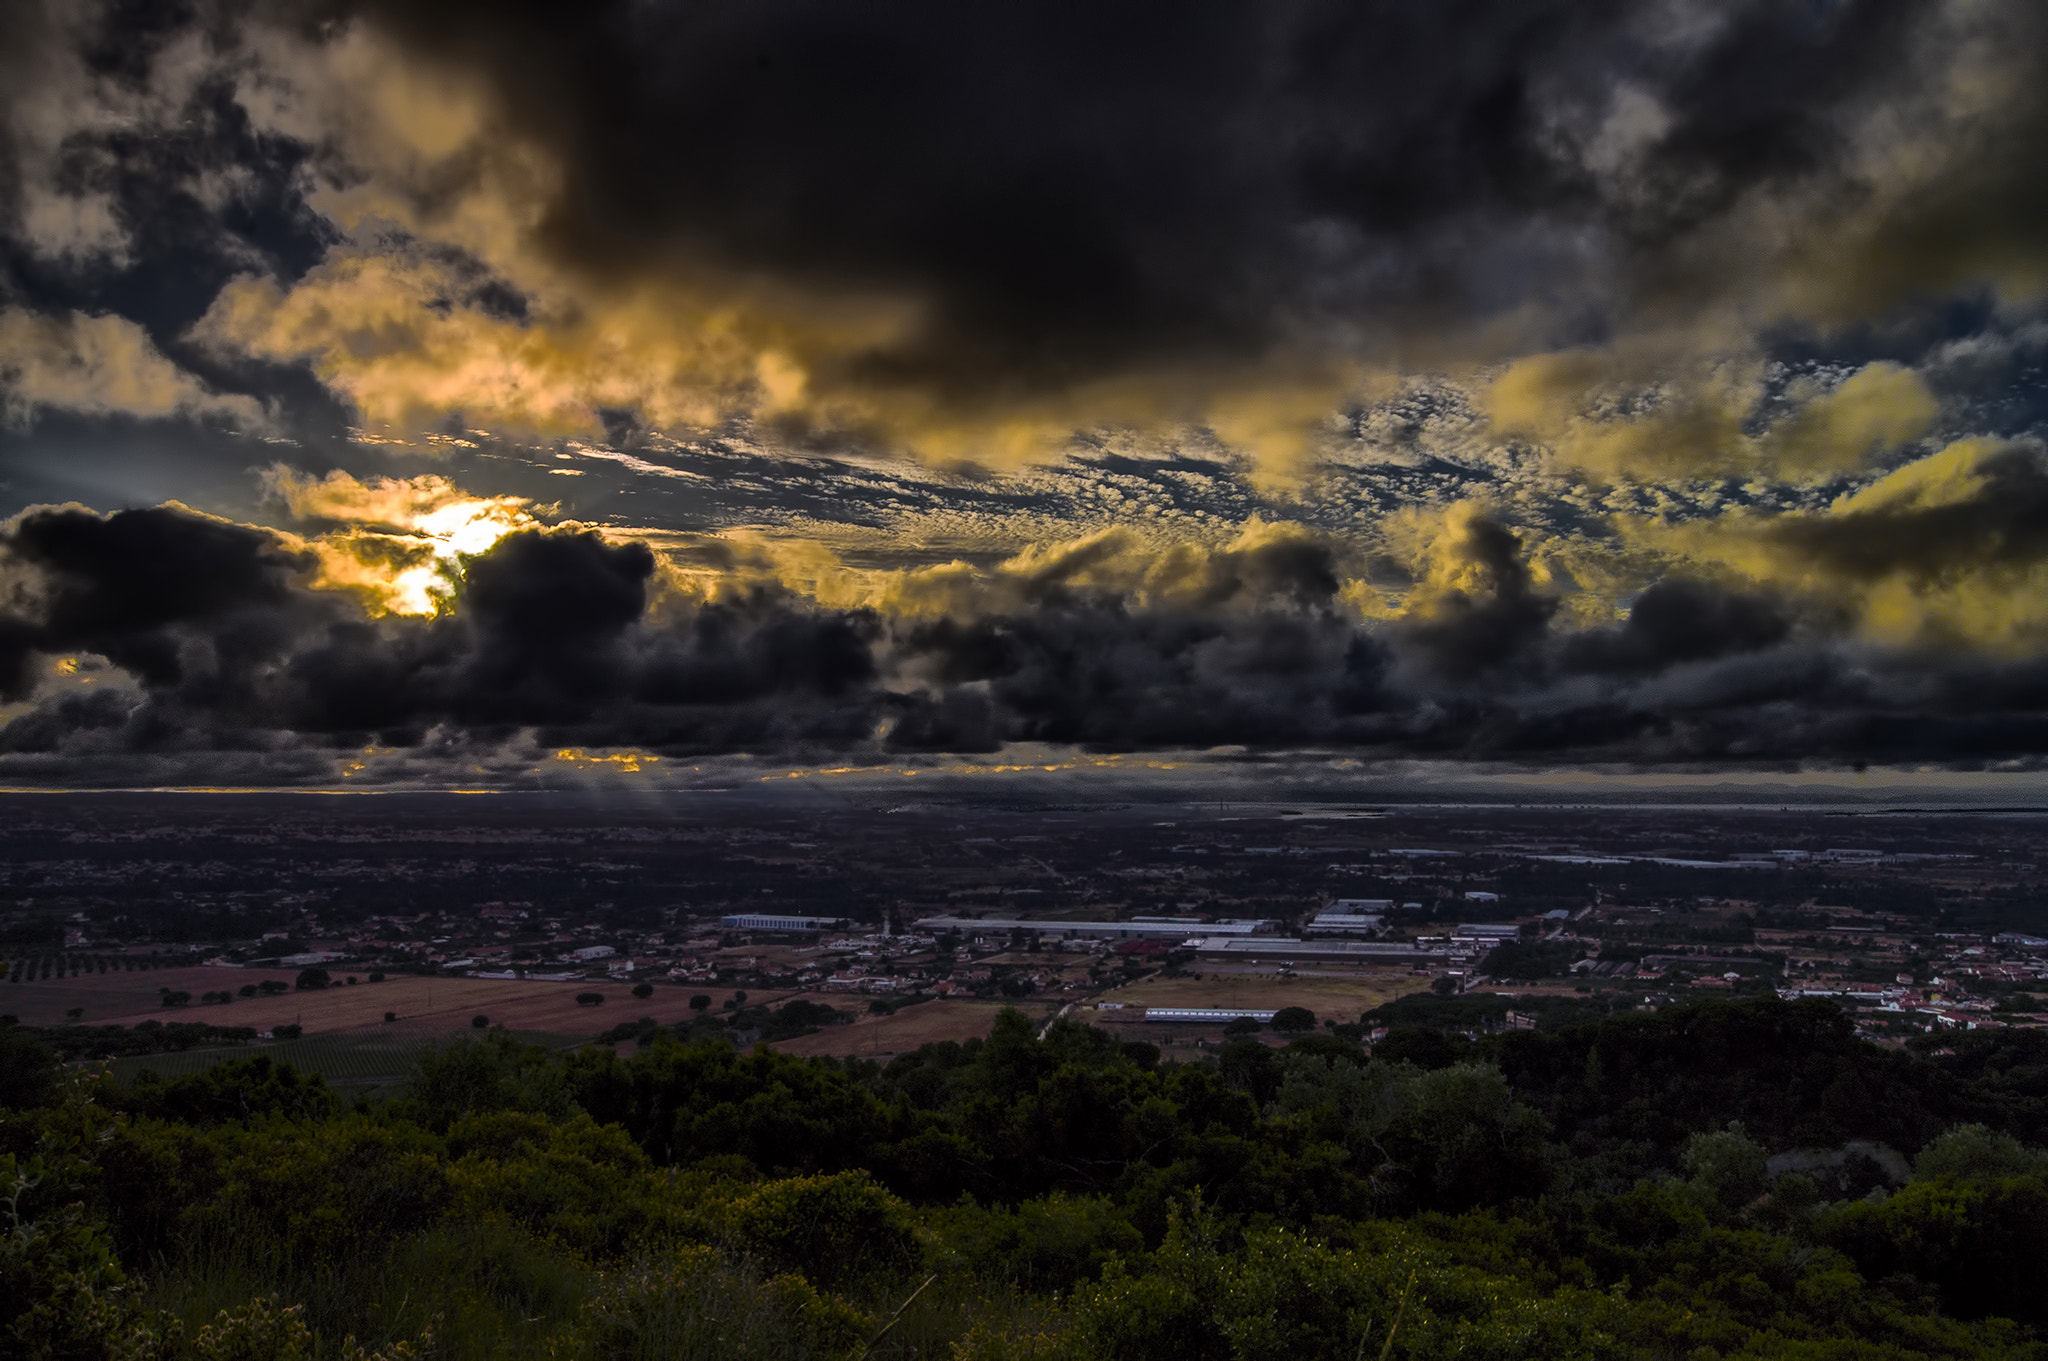 Photograph Clouds Black by Emanuel Fernandes on 500px